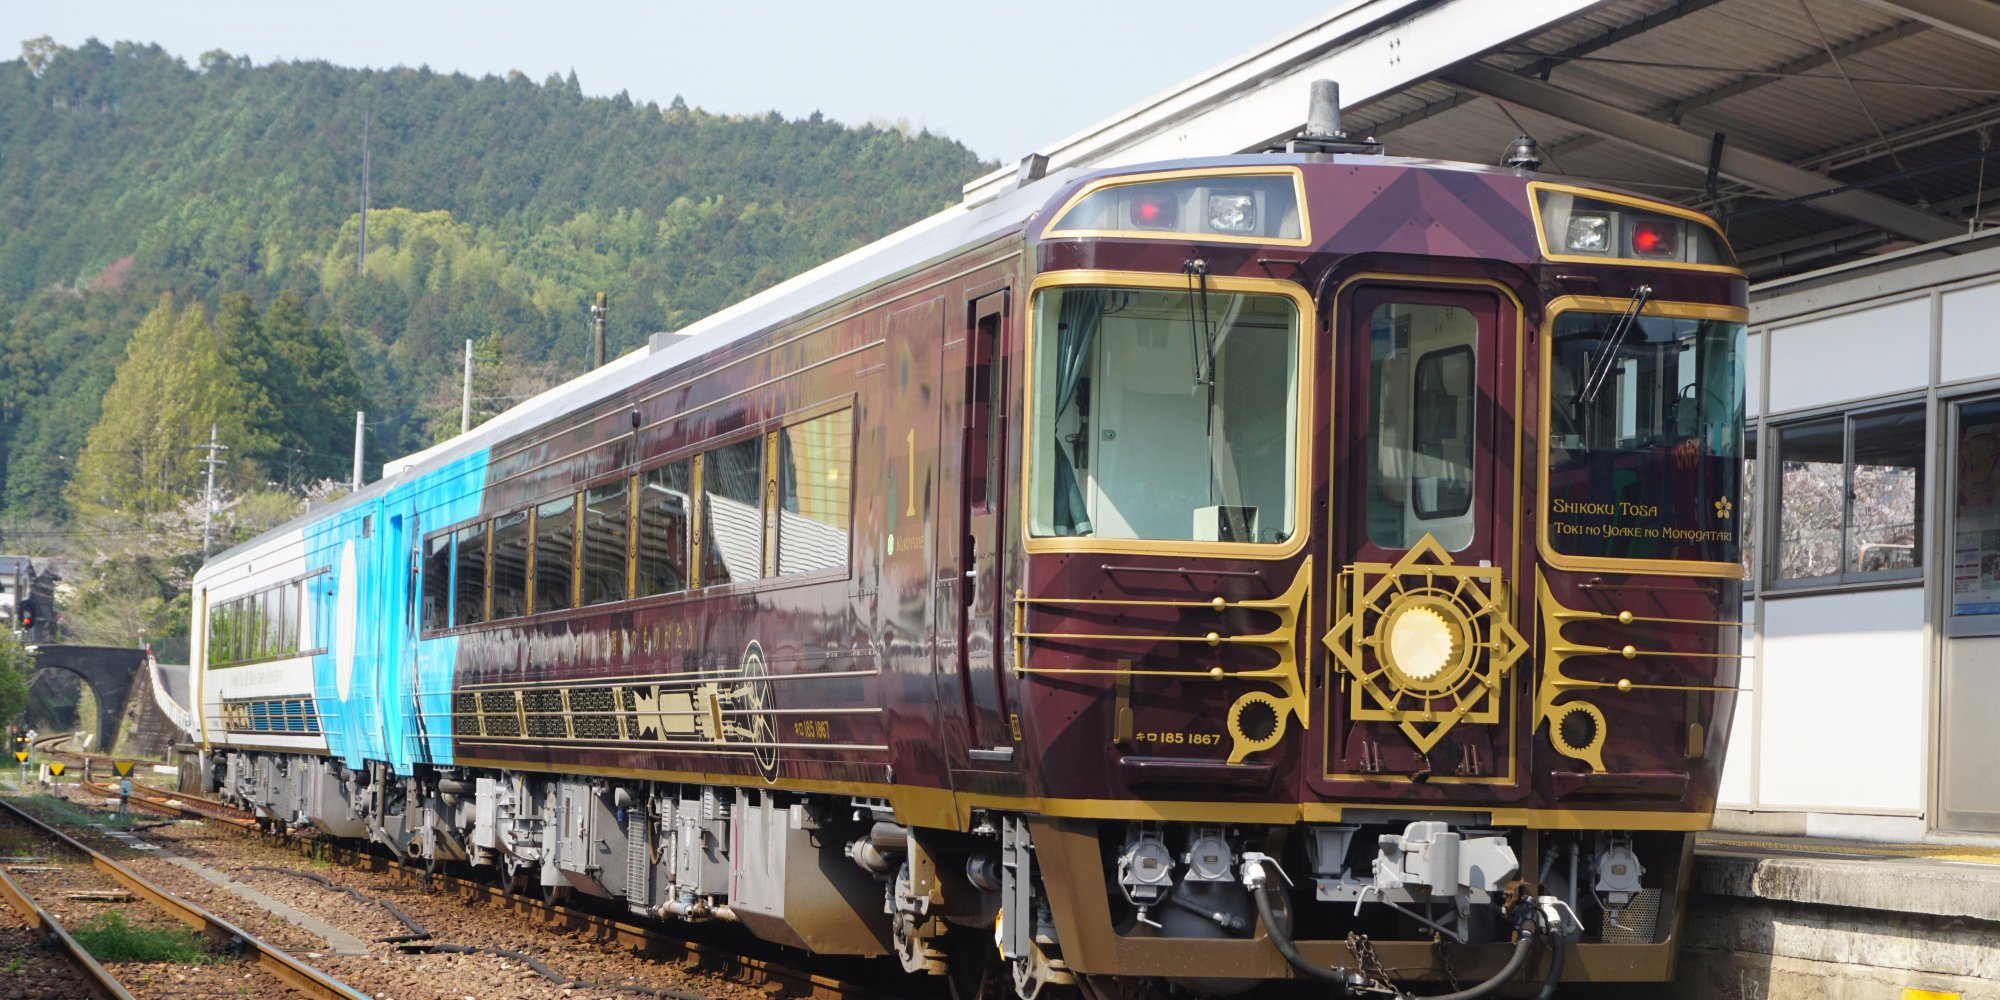 A new sightseeing train runs through Kochi from July 4th!